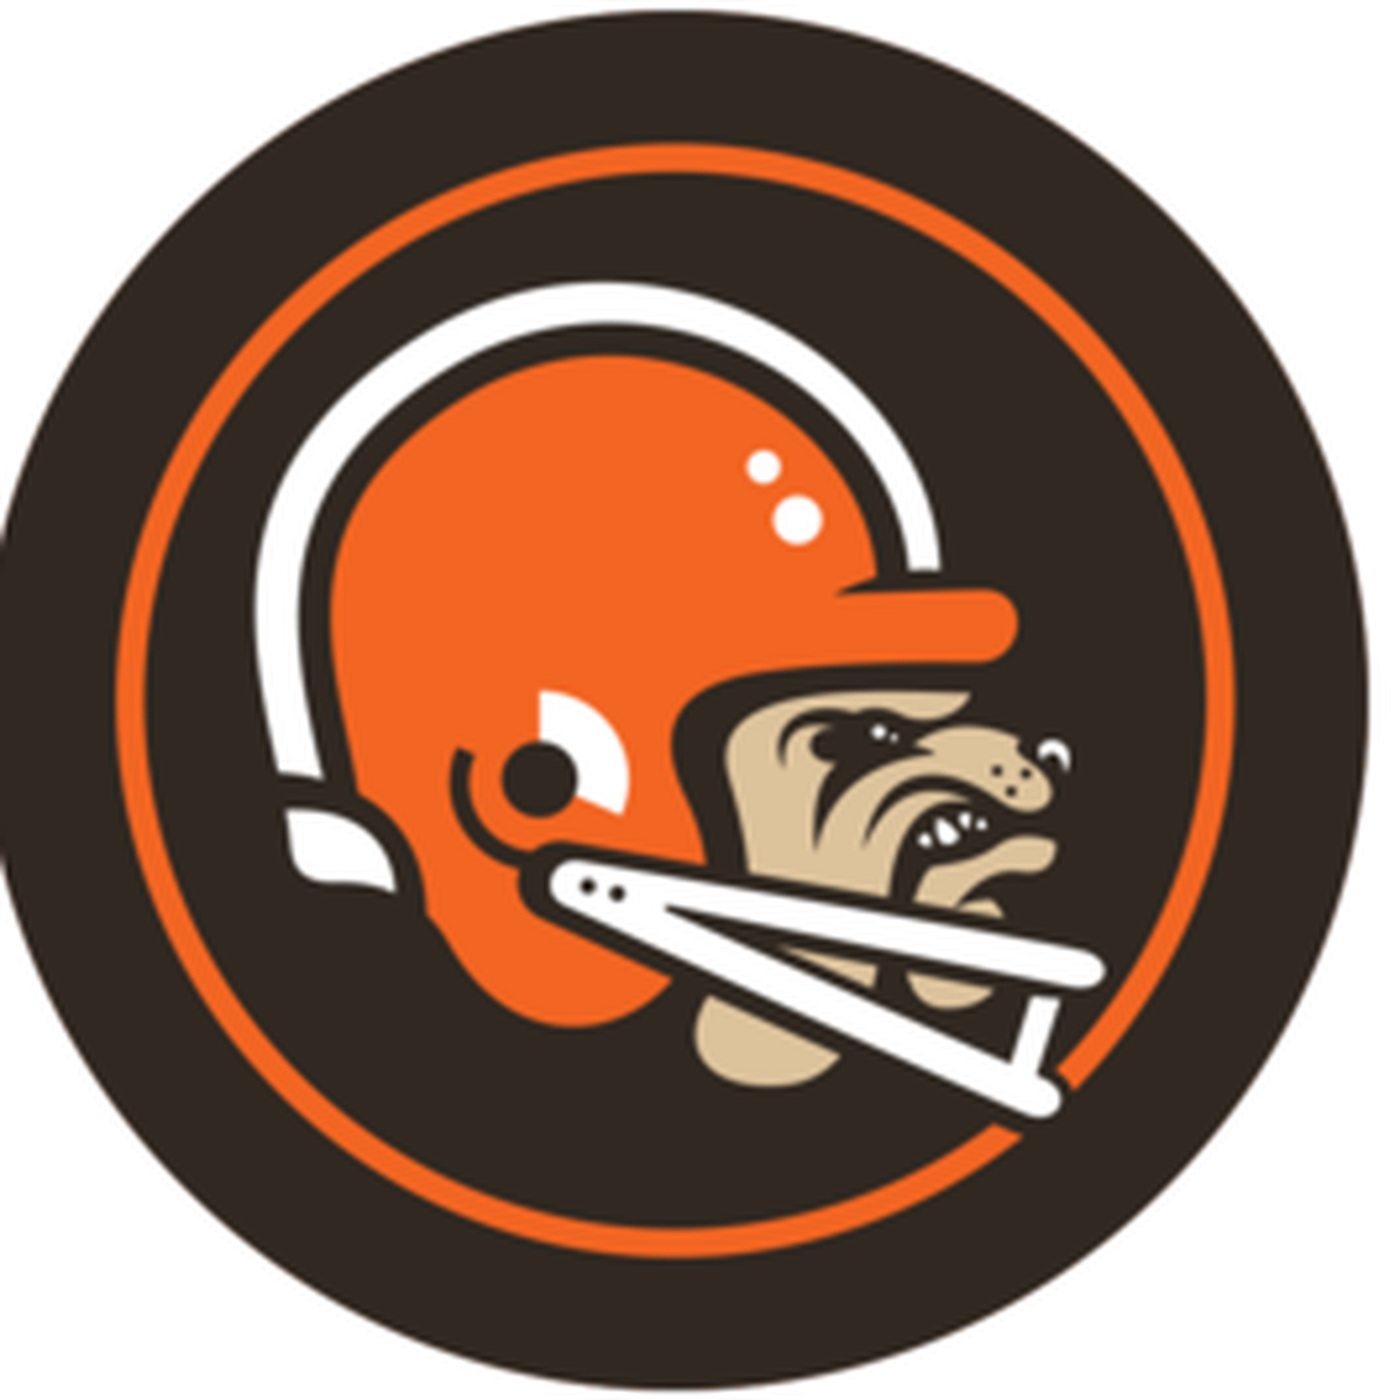 Football sack clipart svg library library Cleveland Browns Draft Success #4: Daylon McCutcheon - Dawgs By Nature svg library library